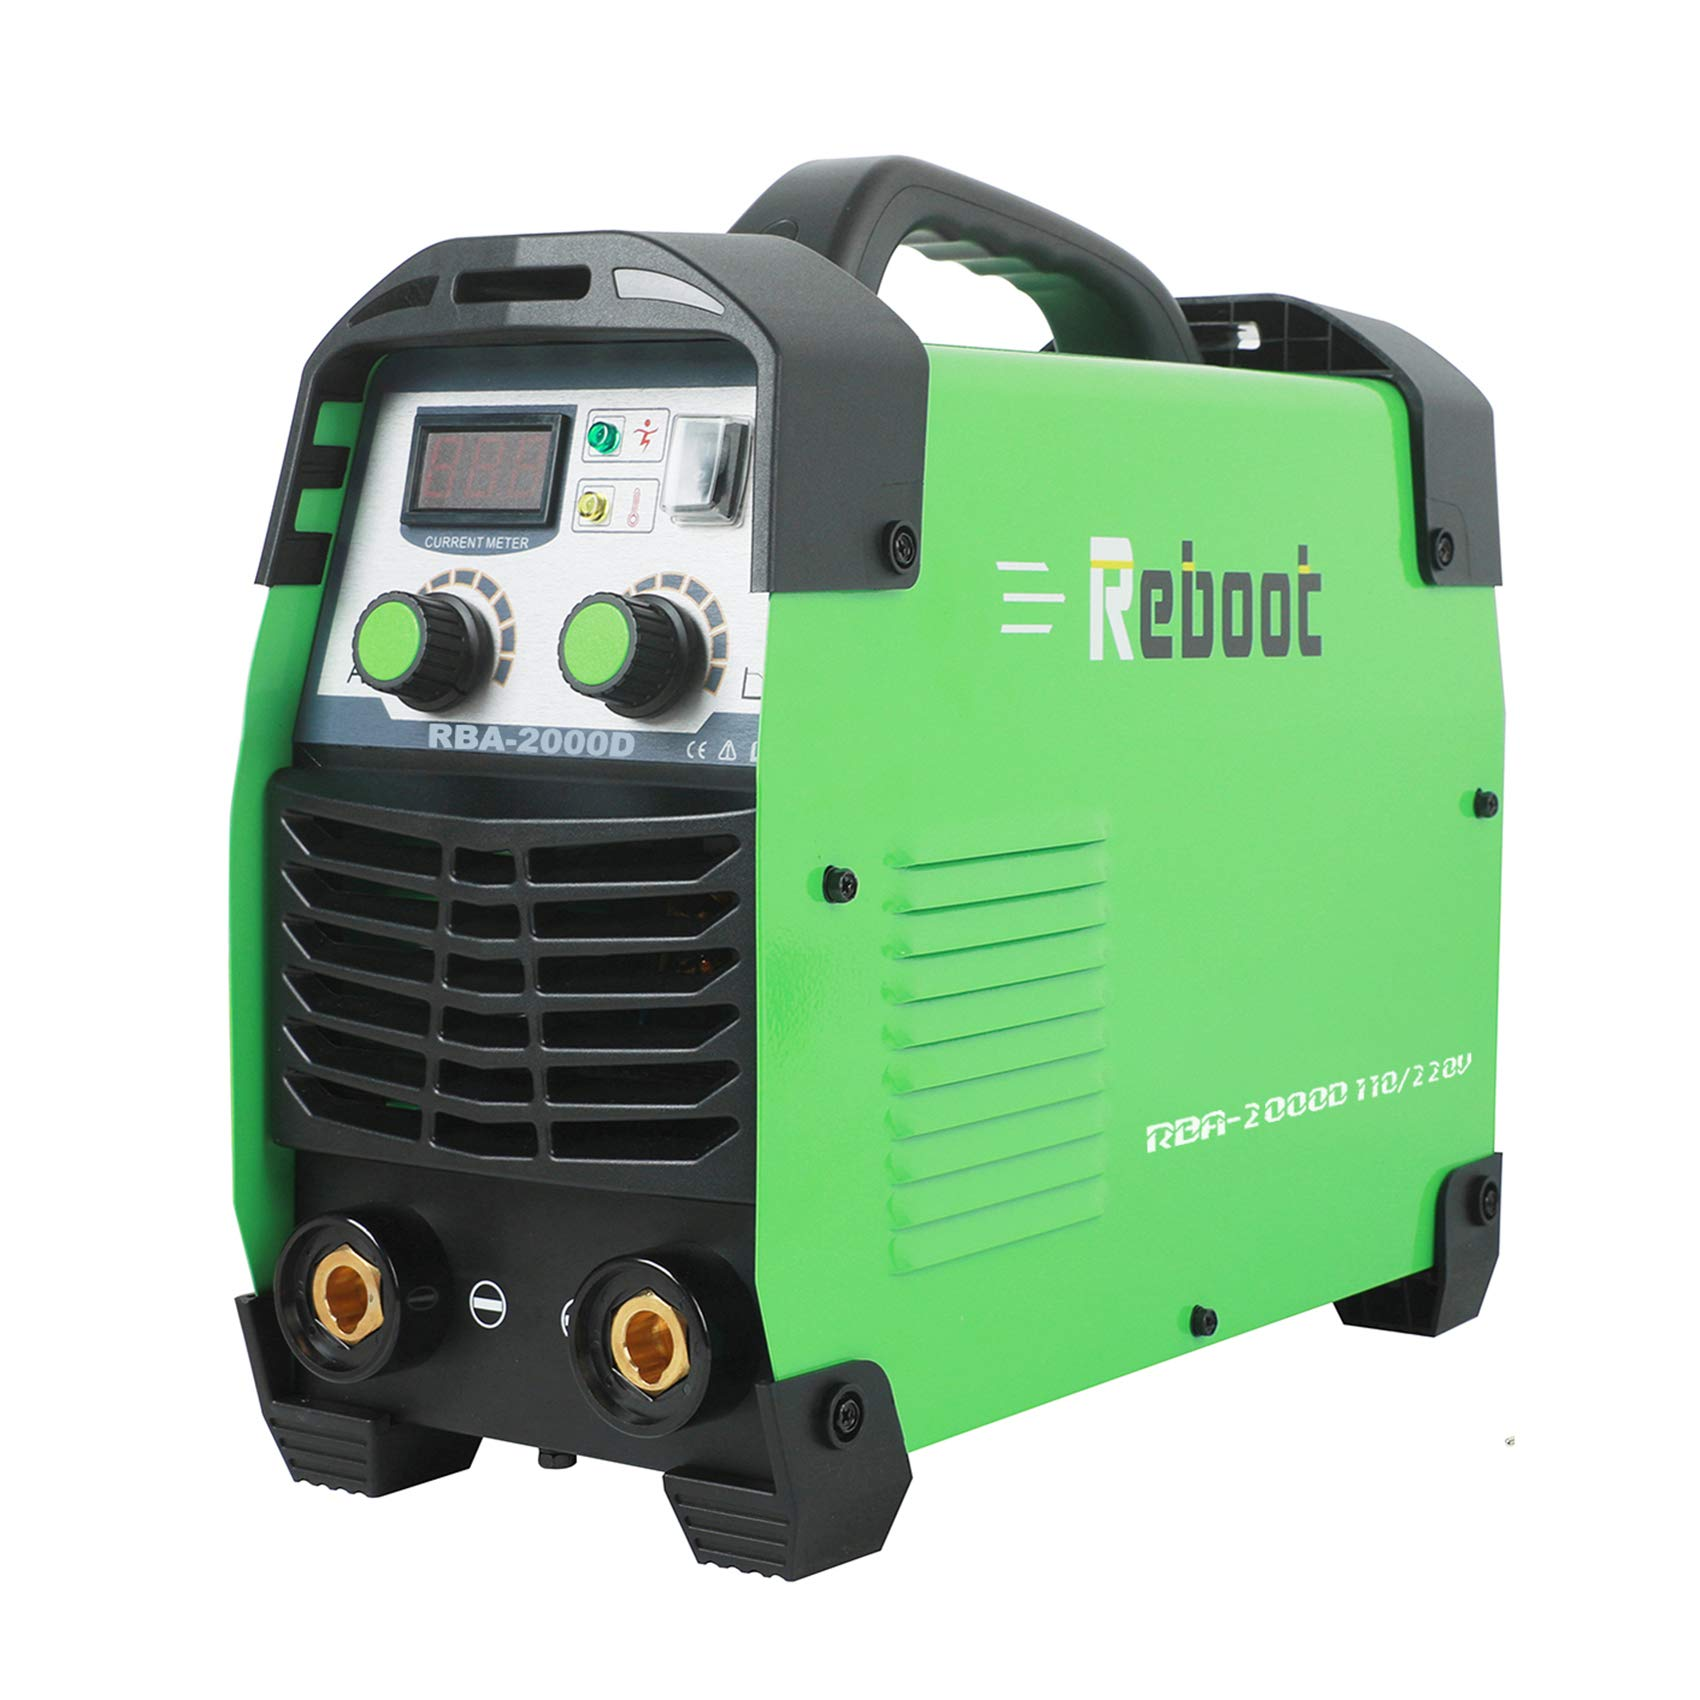 Reboot Inverter Welding Machine Portable